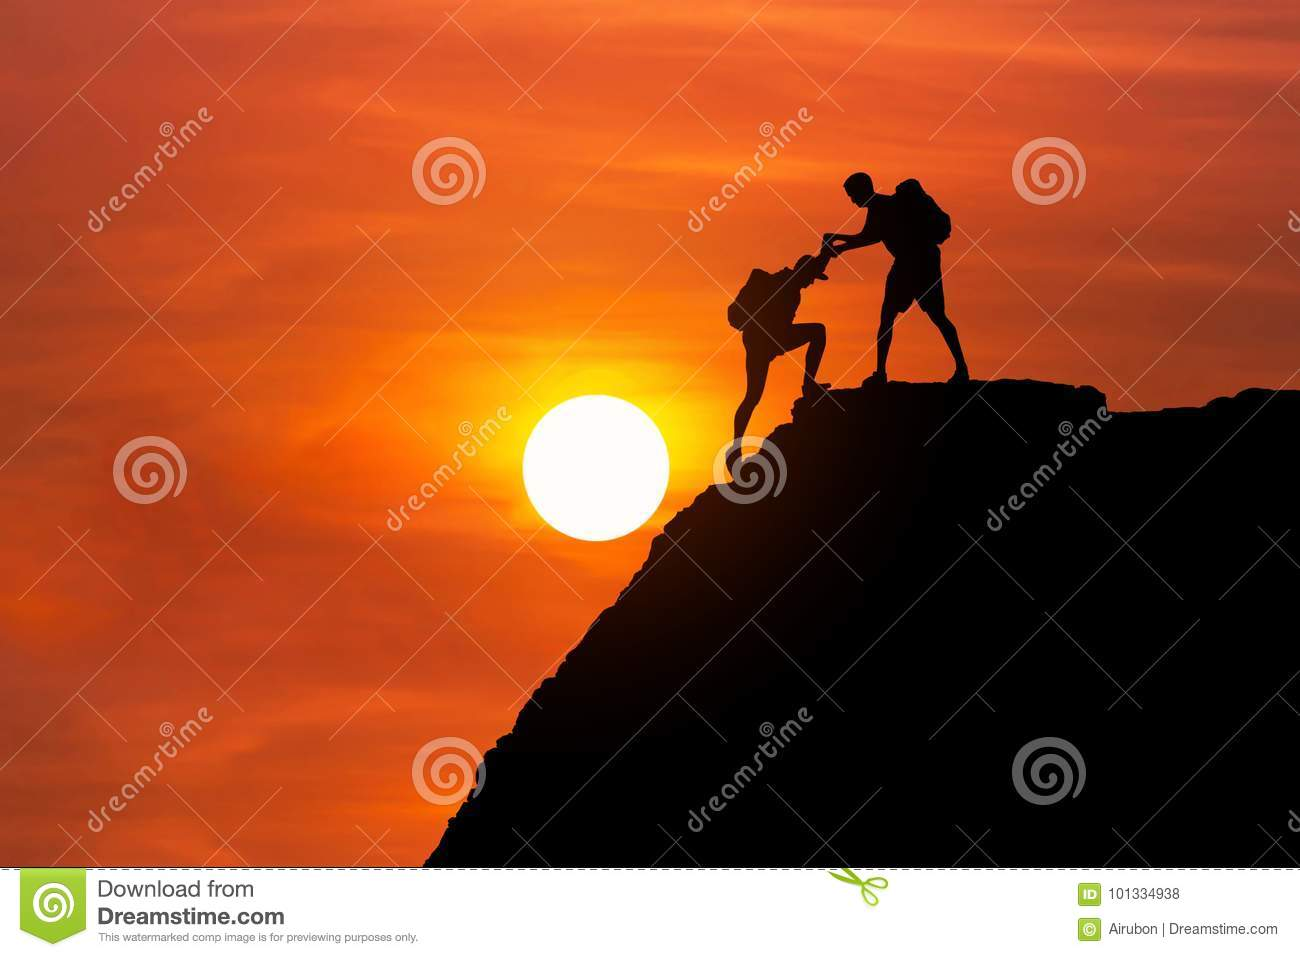 Silhouette mountaineer gives helping hand his friend to climb high cliff mountain together.